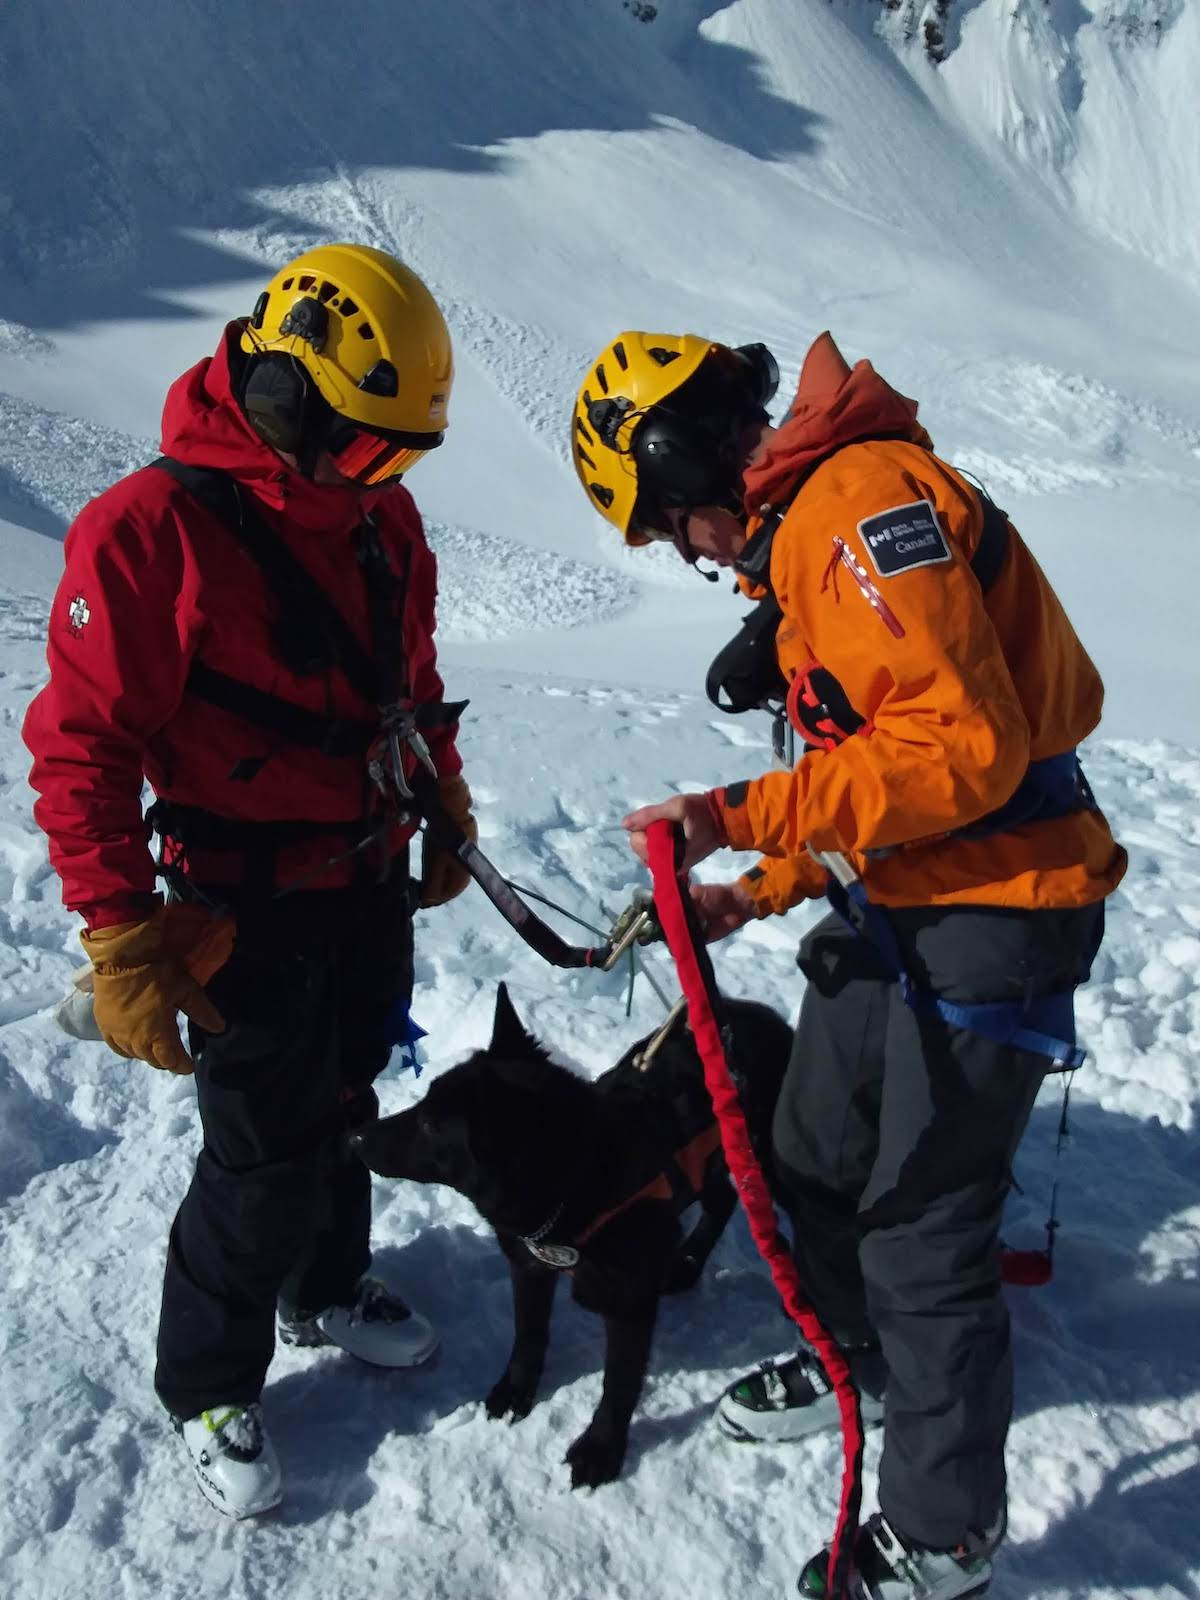 The search dog with handlers. [Photo] Courtesy of Parks Canada